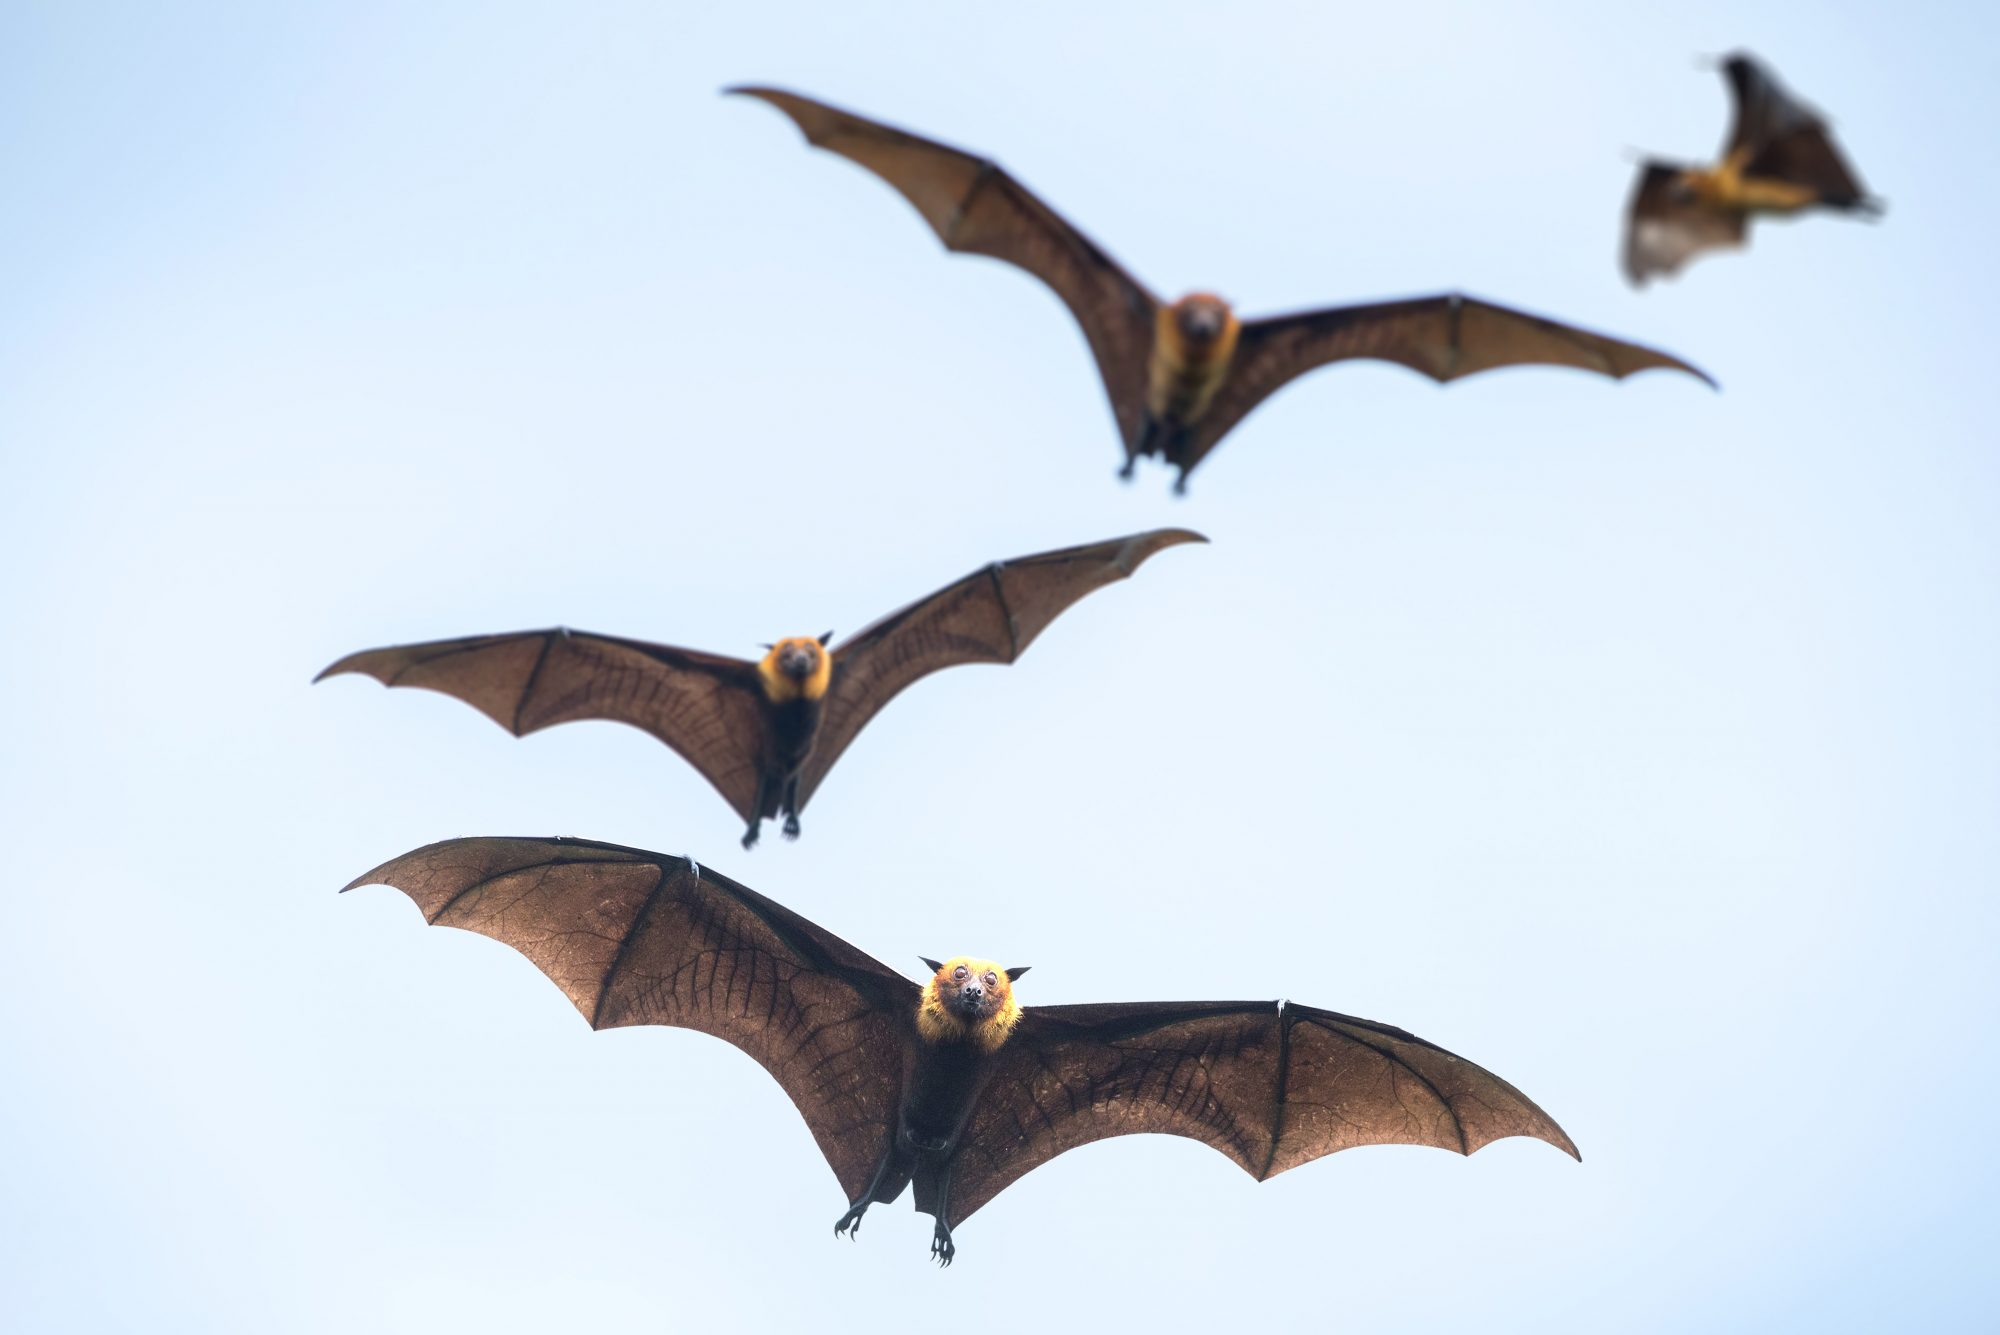 group of bats flying